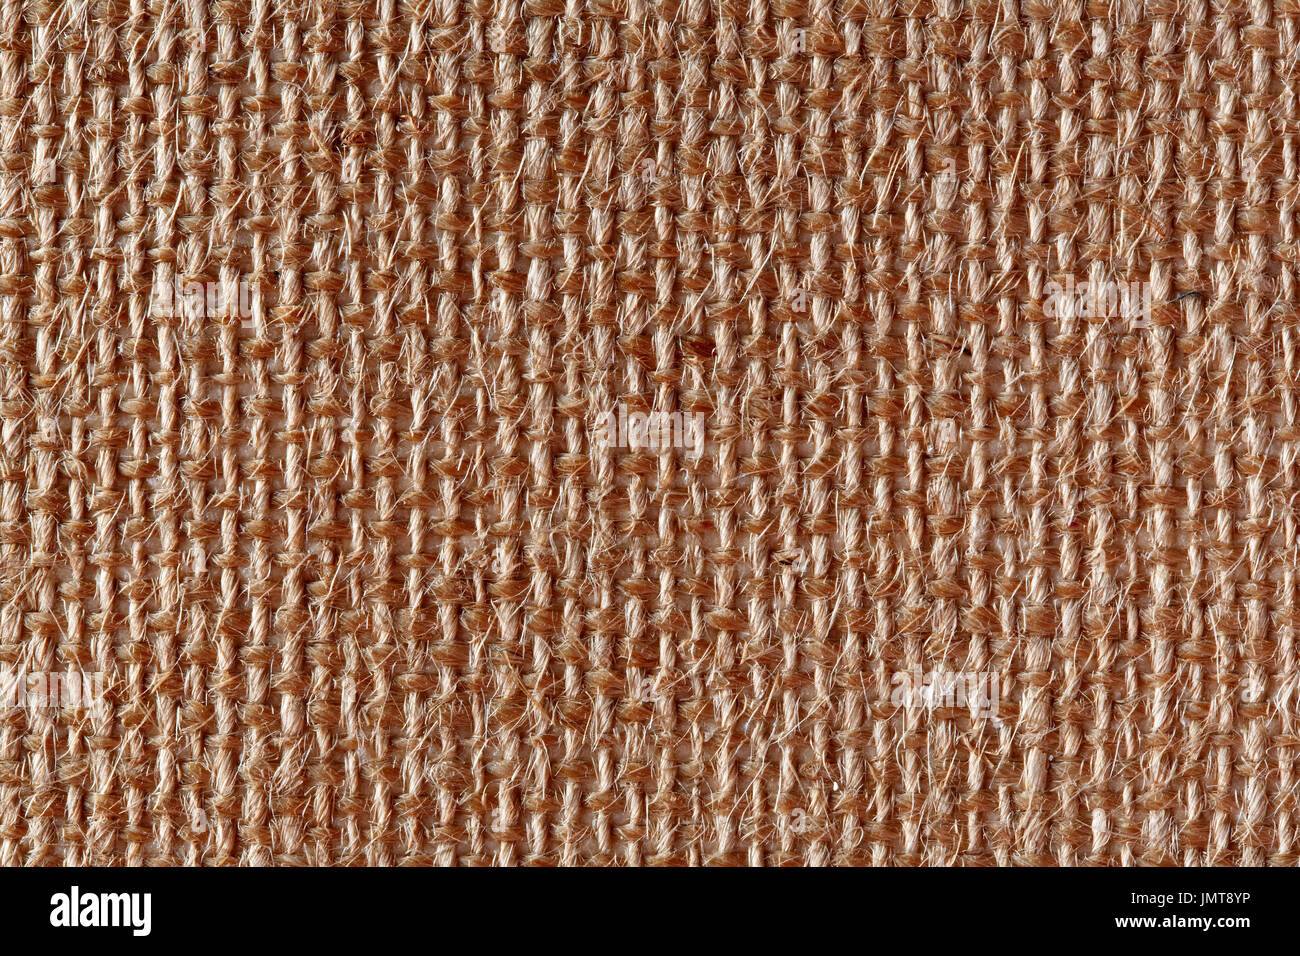 Canvas texture close-up. High resolution photo. - Stock Image